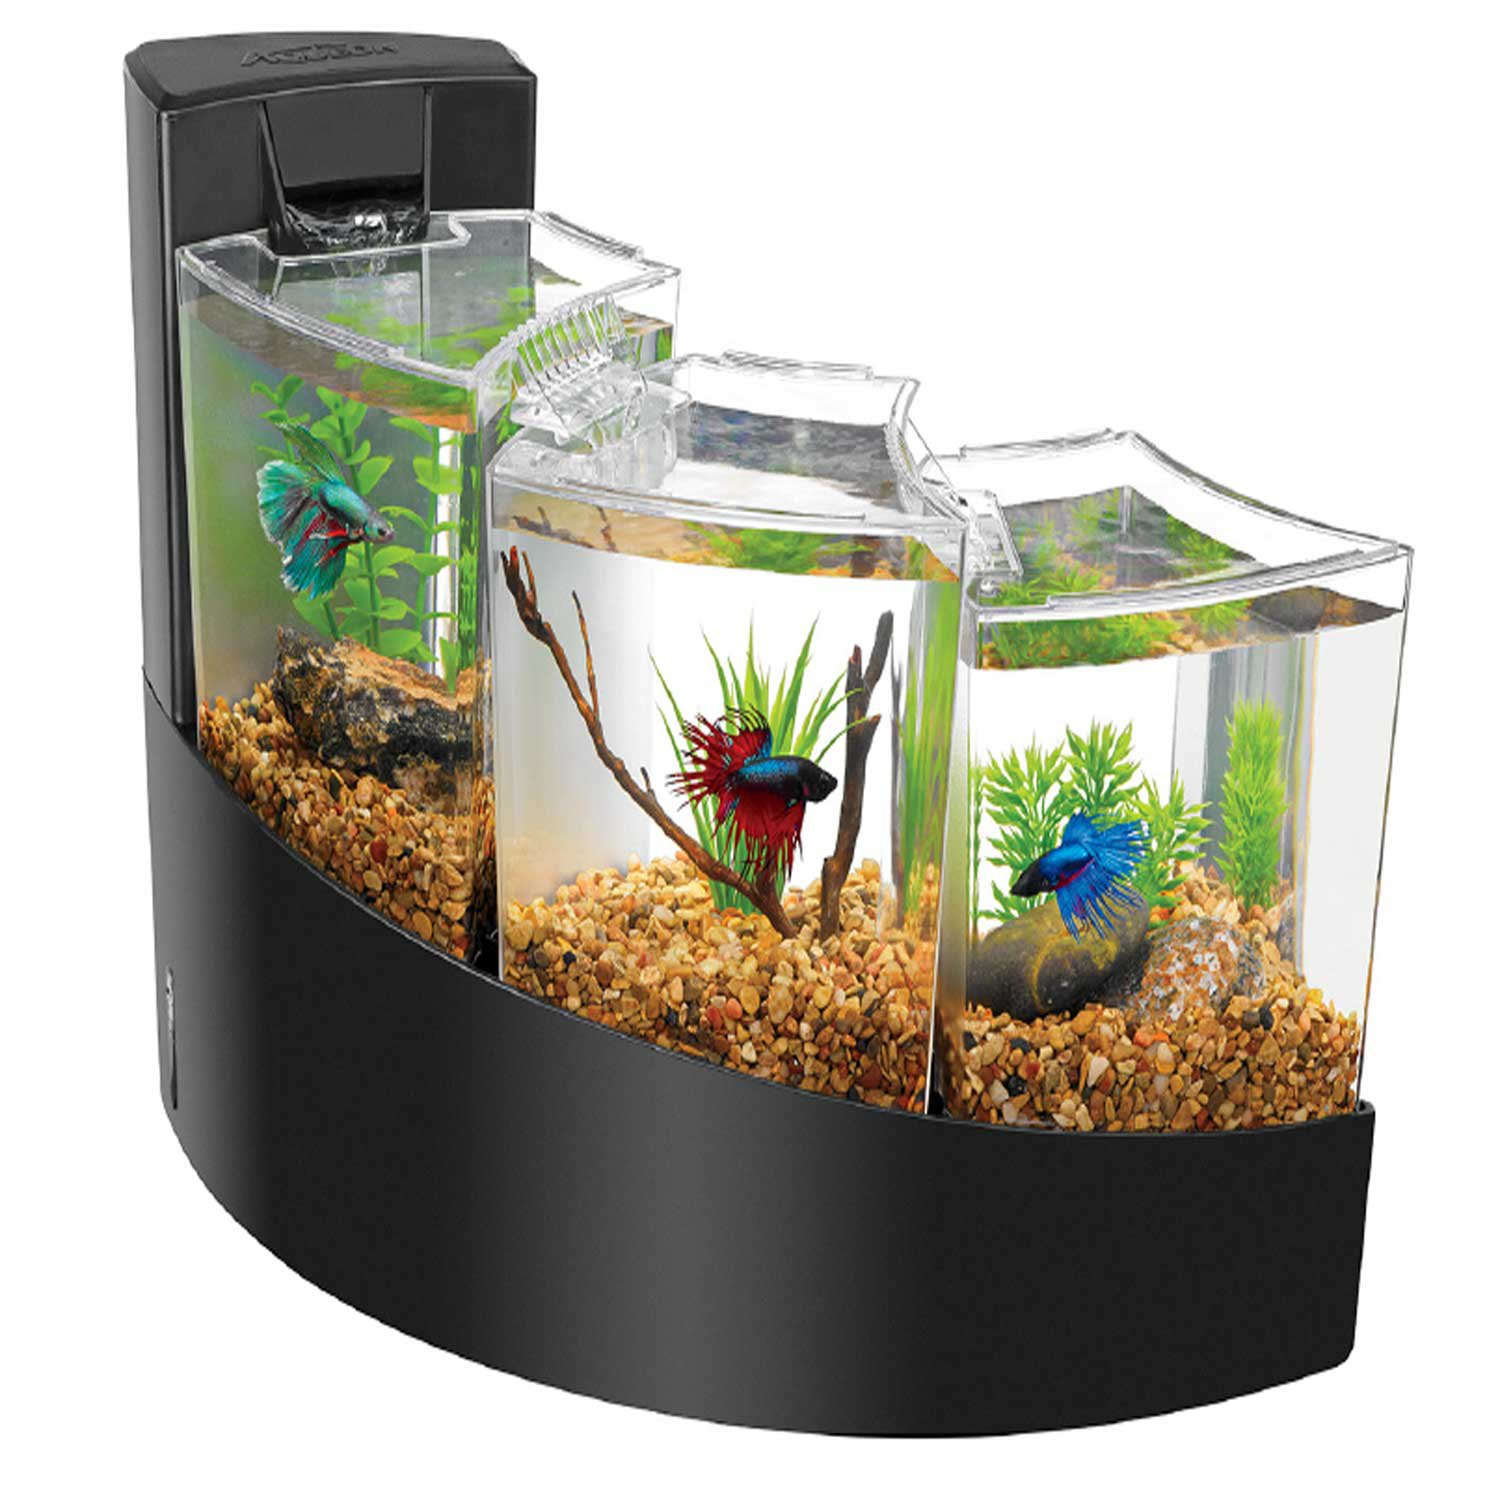 Fish aquarium shops in nagpur wholesalers dealers on for Aquarium fish online